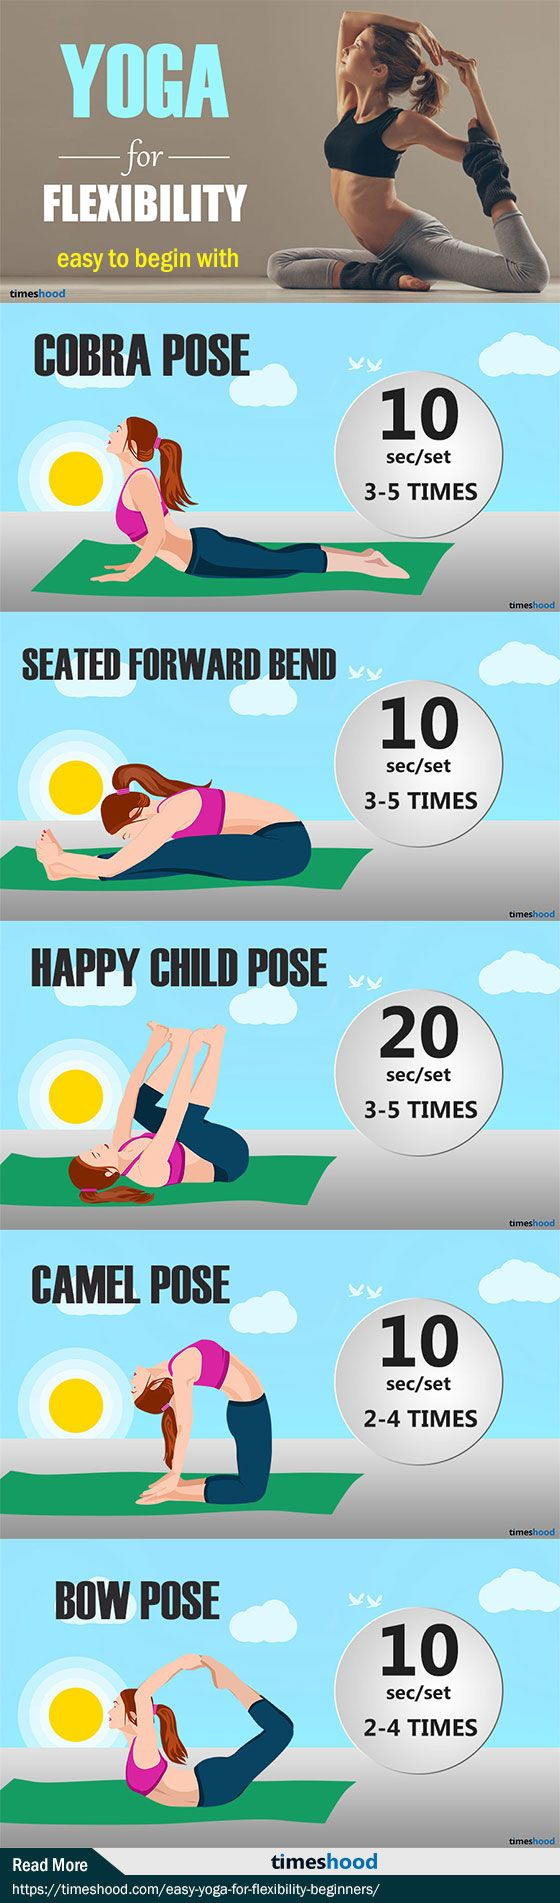 How to improve flexibility for beginners? Give these Yoga poses a try if you want to improve flexibility. These are simple yoga pose which improve flexibility for beginners. Repin to save these poses for later! 5 flexibility yoga poses for beginner level. Flexibility stretches for beginners. Read More: https://timeshood.com/easy-yoga-for-flexibility-beginners/